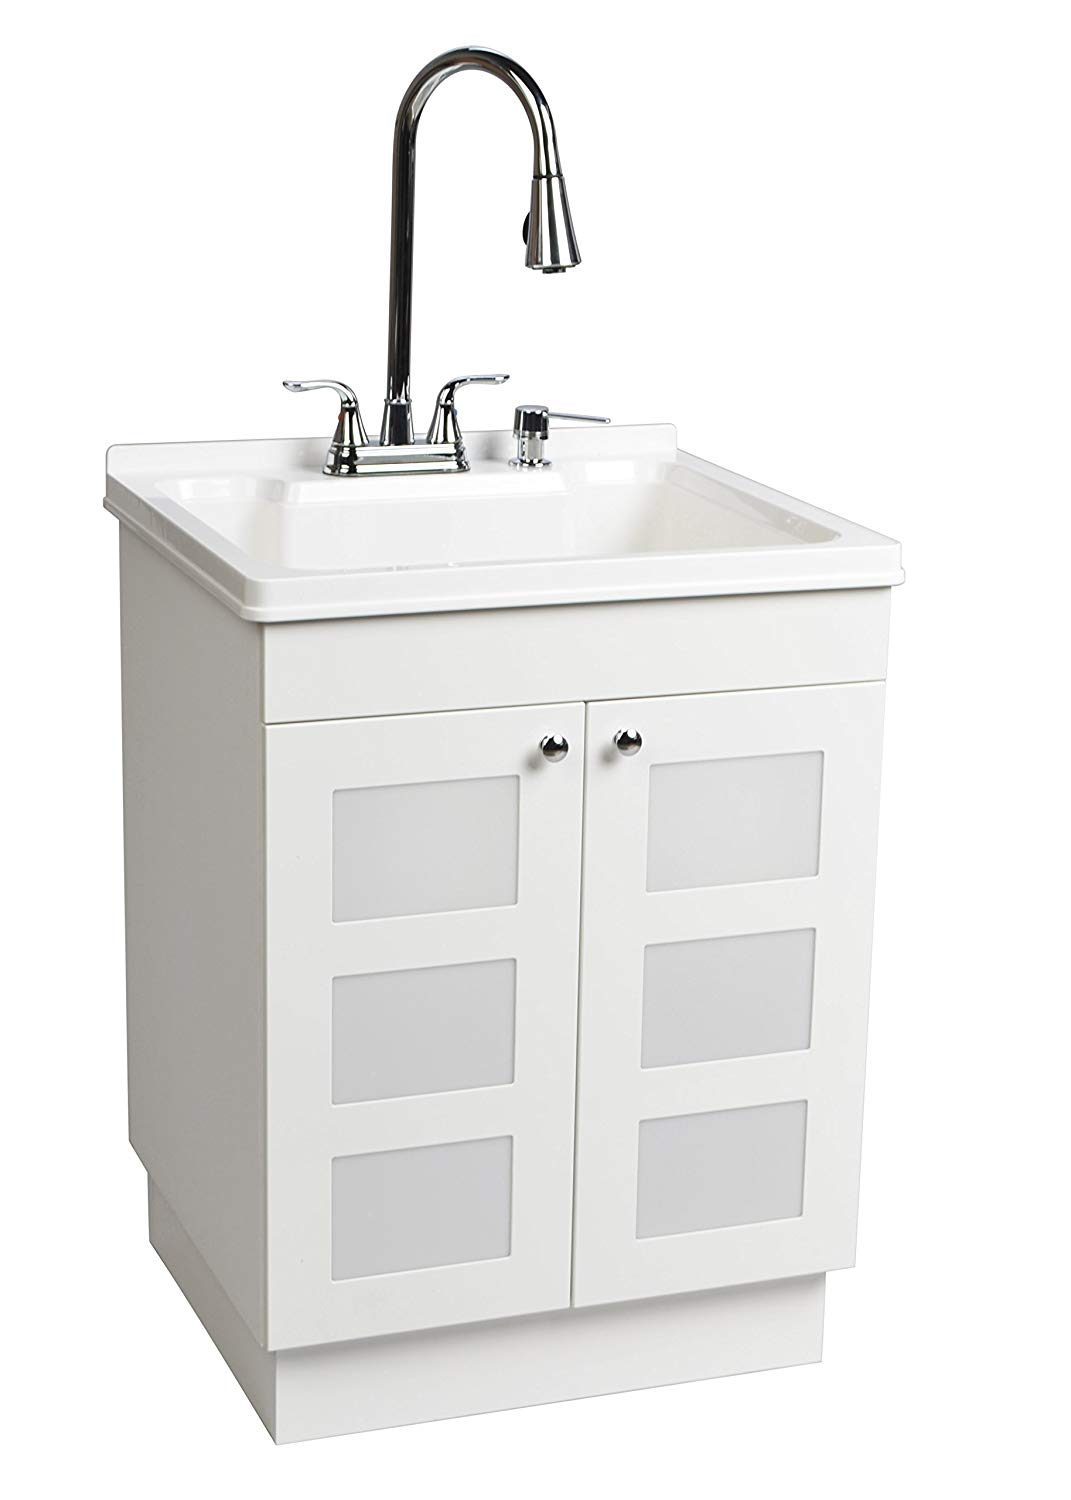 Exquisite LDR 77712CP-SD Laundry Utility Cabinet Sink Vanity Chrome Faucet